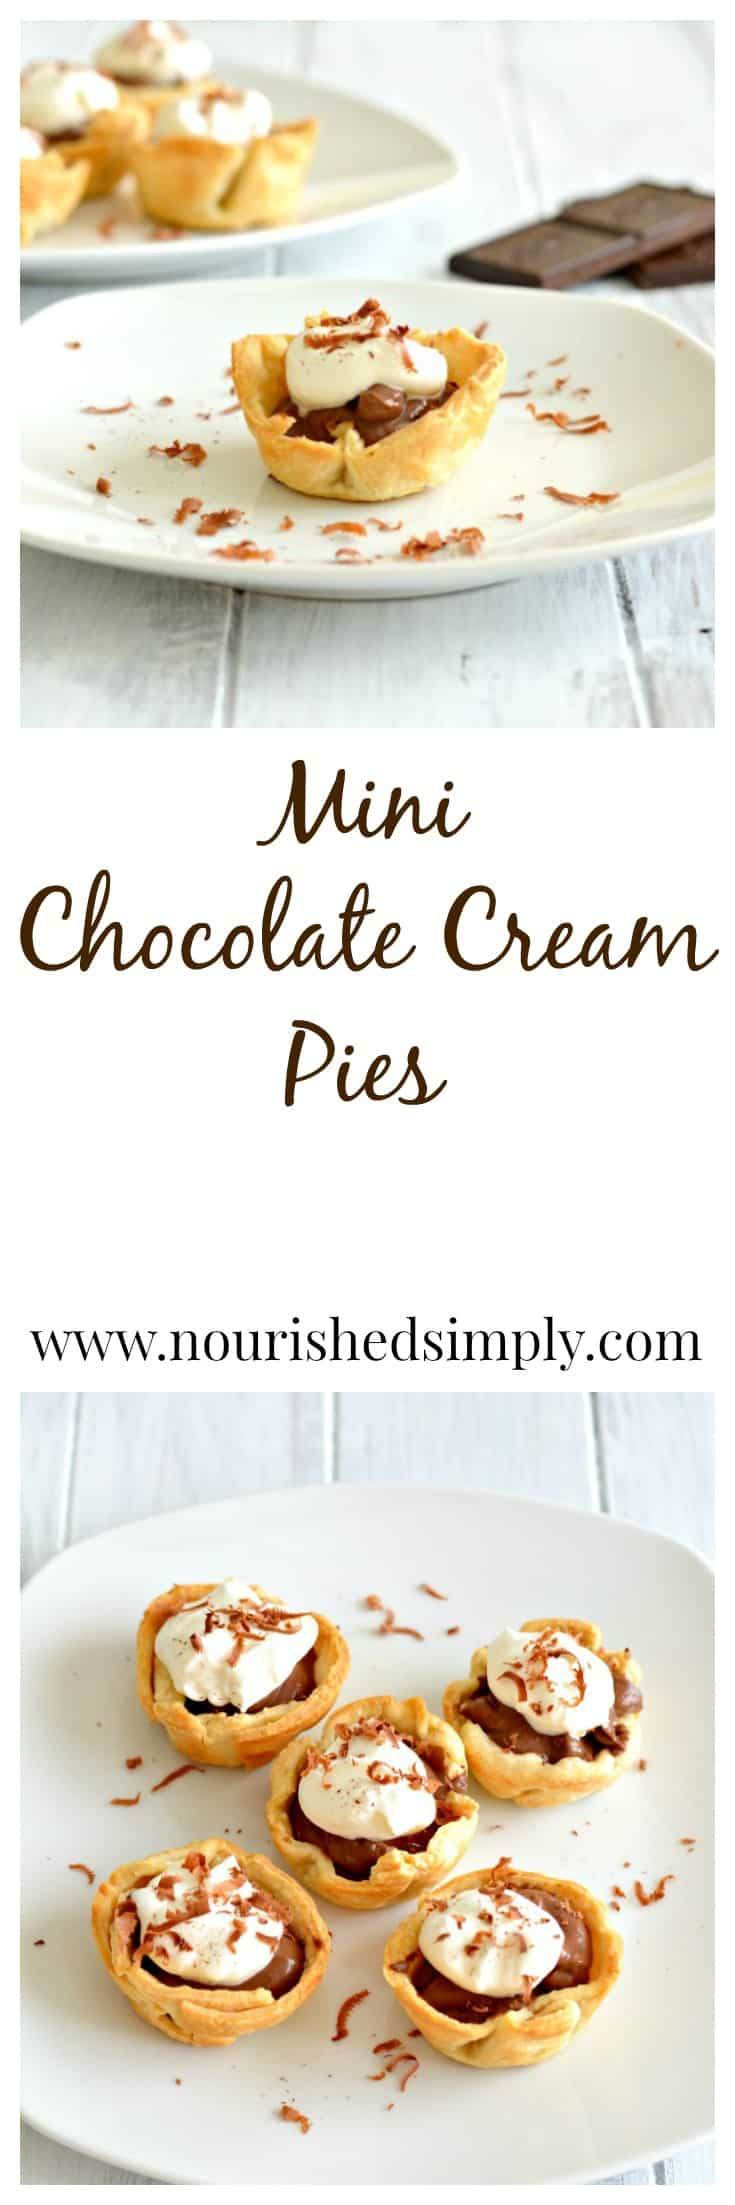 Mini Chocolate Cream Pies a sweet treat without all the guilt.